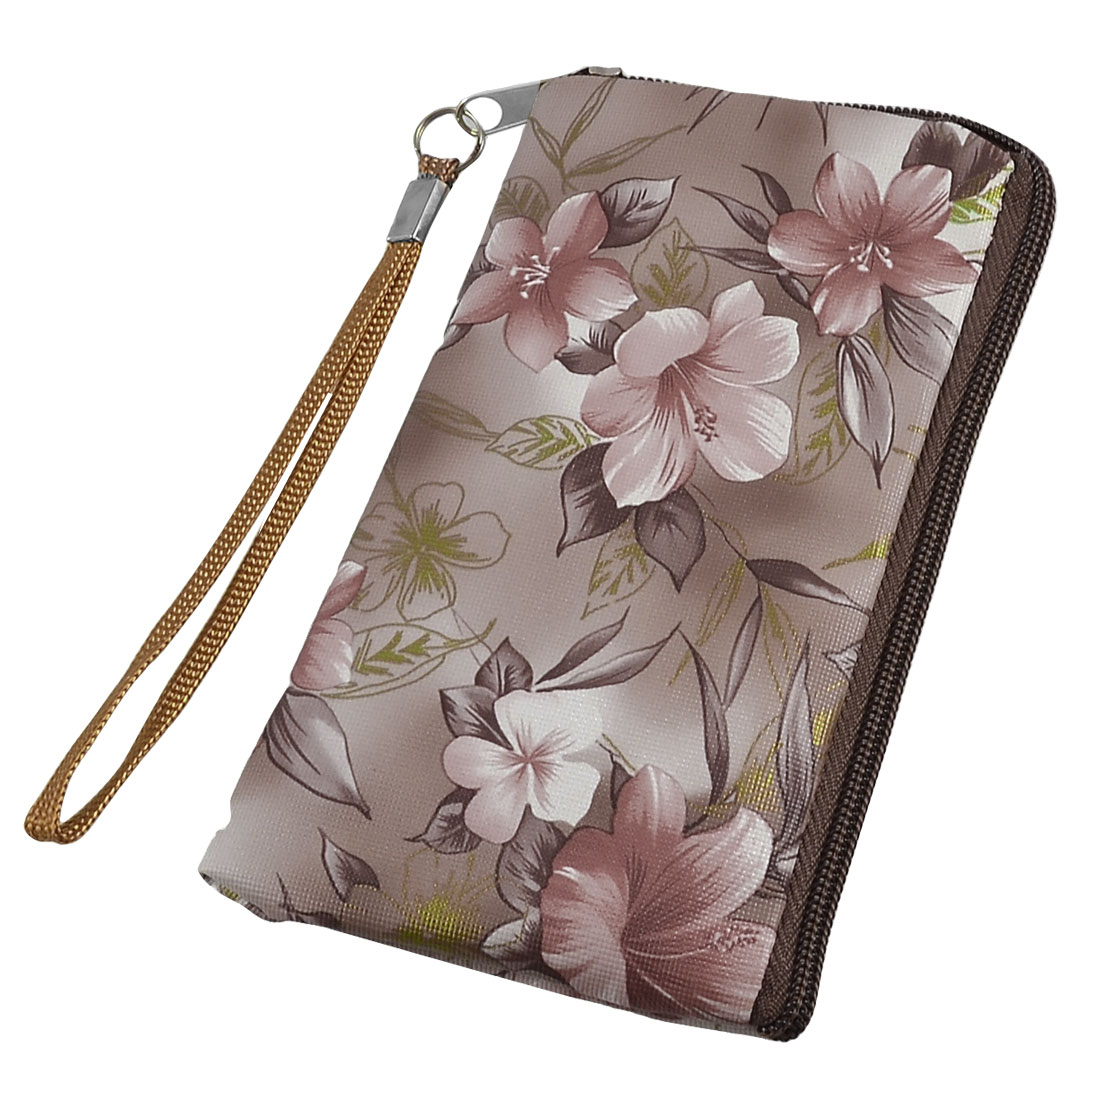 Gray Brown Floral Prints Cell Phone MP3 MP4 Pouch Bag w Strap